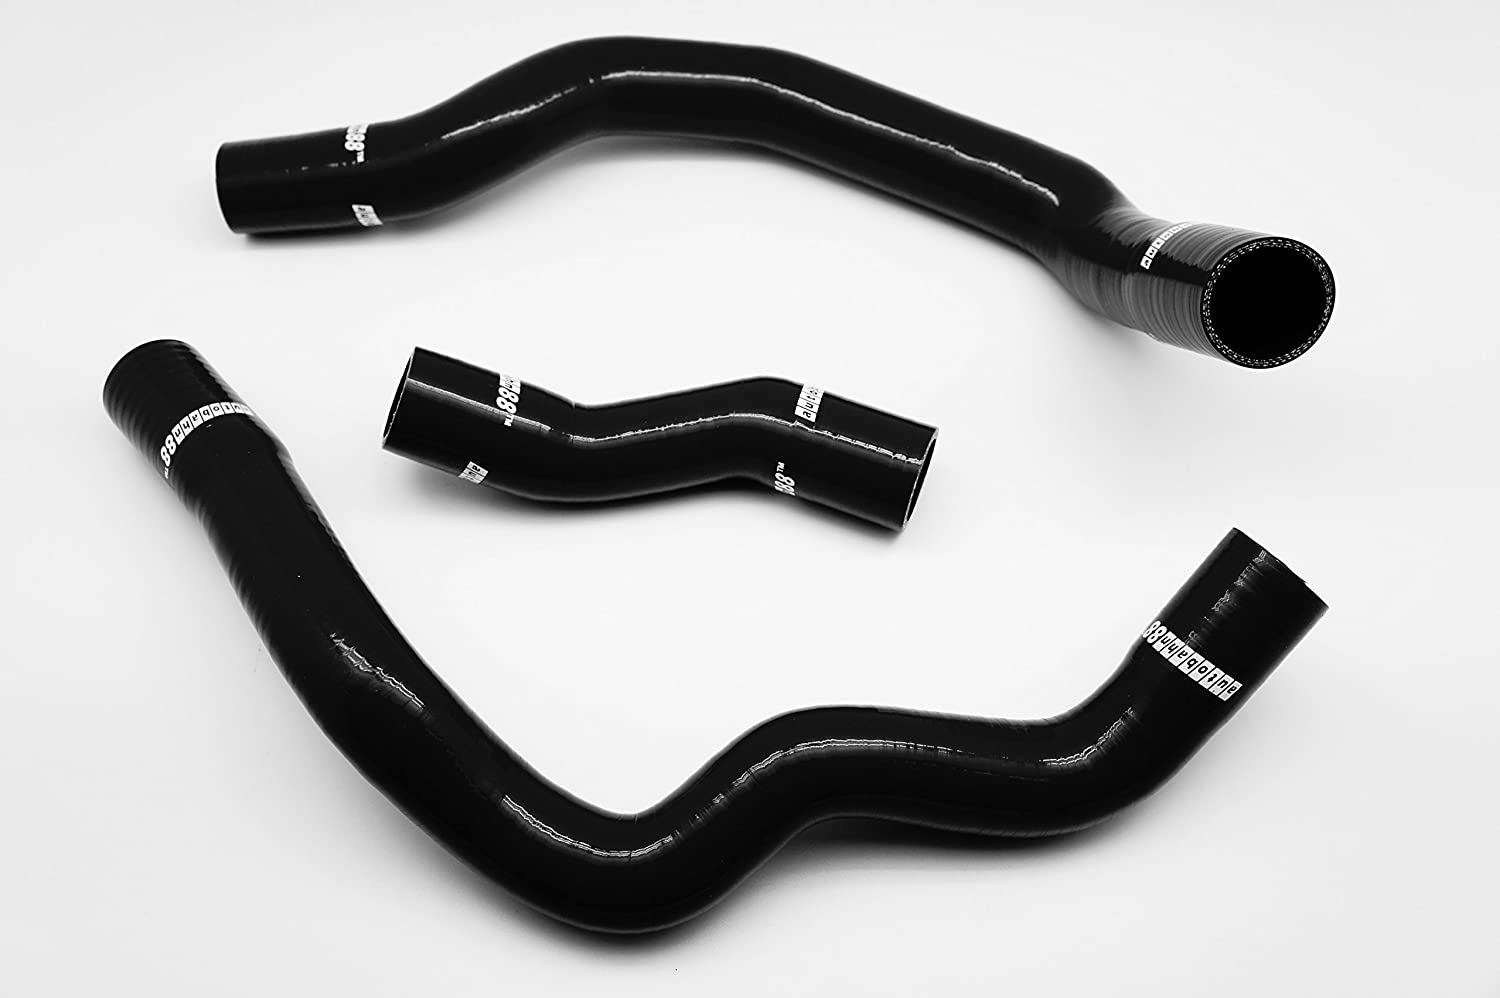 SPI 1.3I Black -with Clamp Set Autobahn88 Radiator Coolant Silicone Hose Kit fits for 1990-1999 Mini Cooper Rover